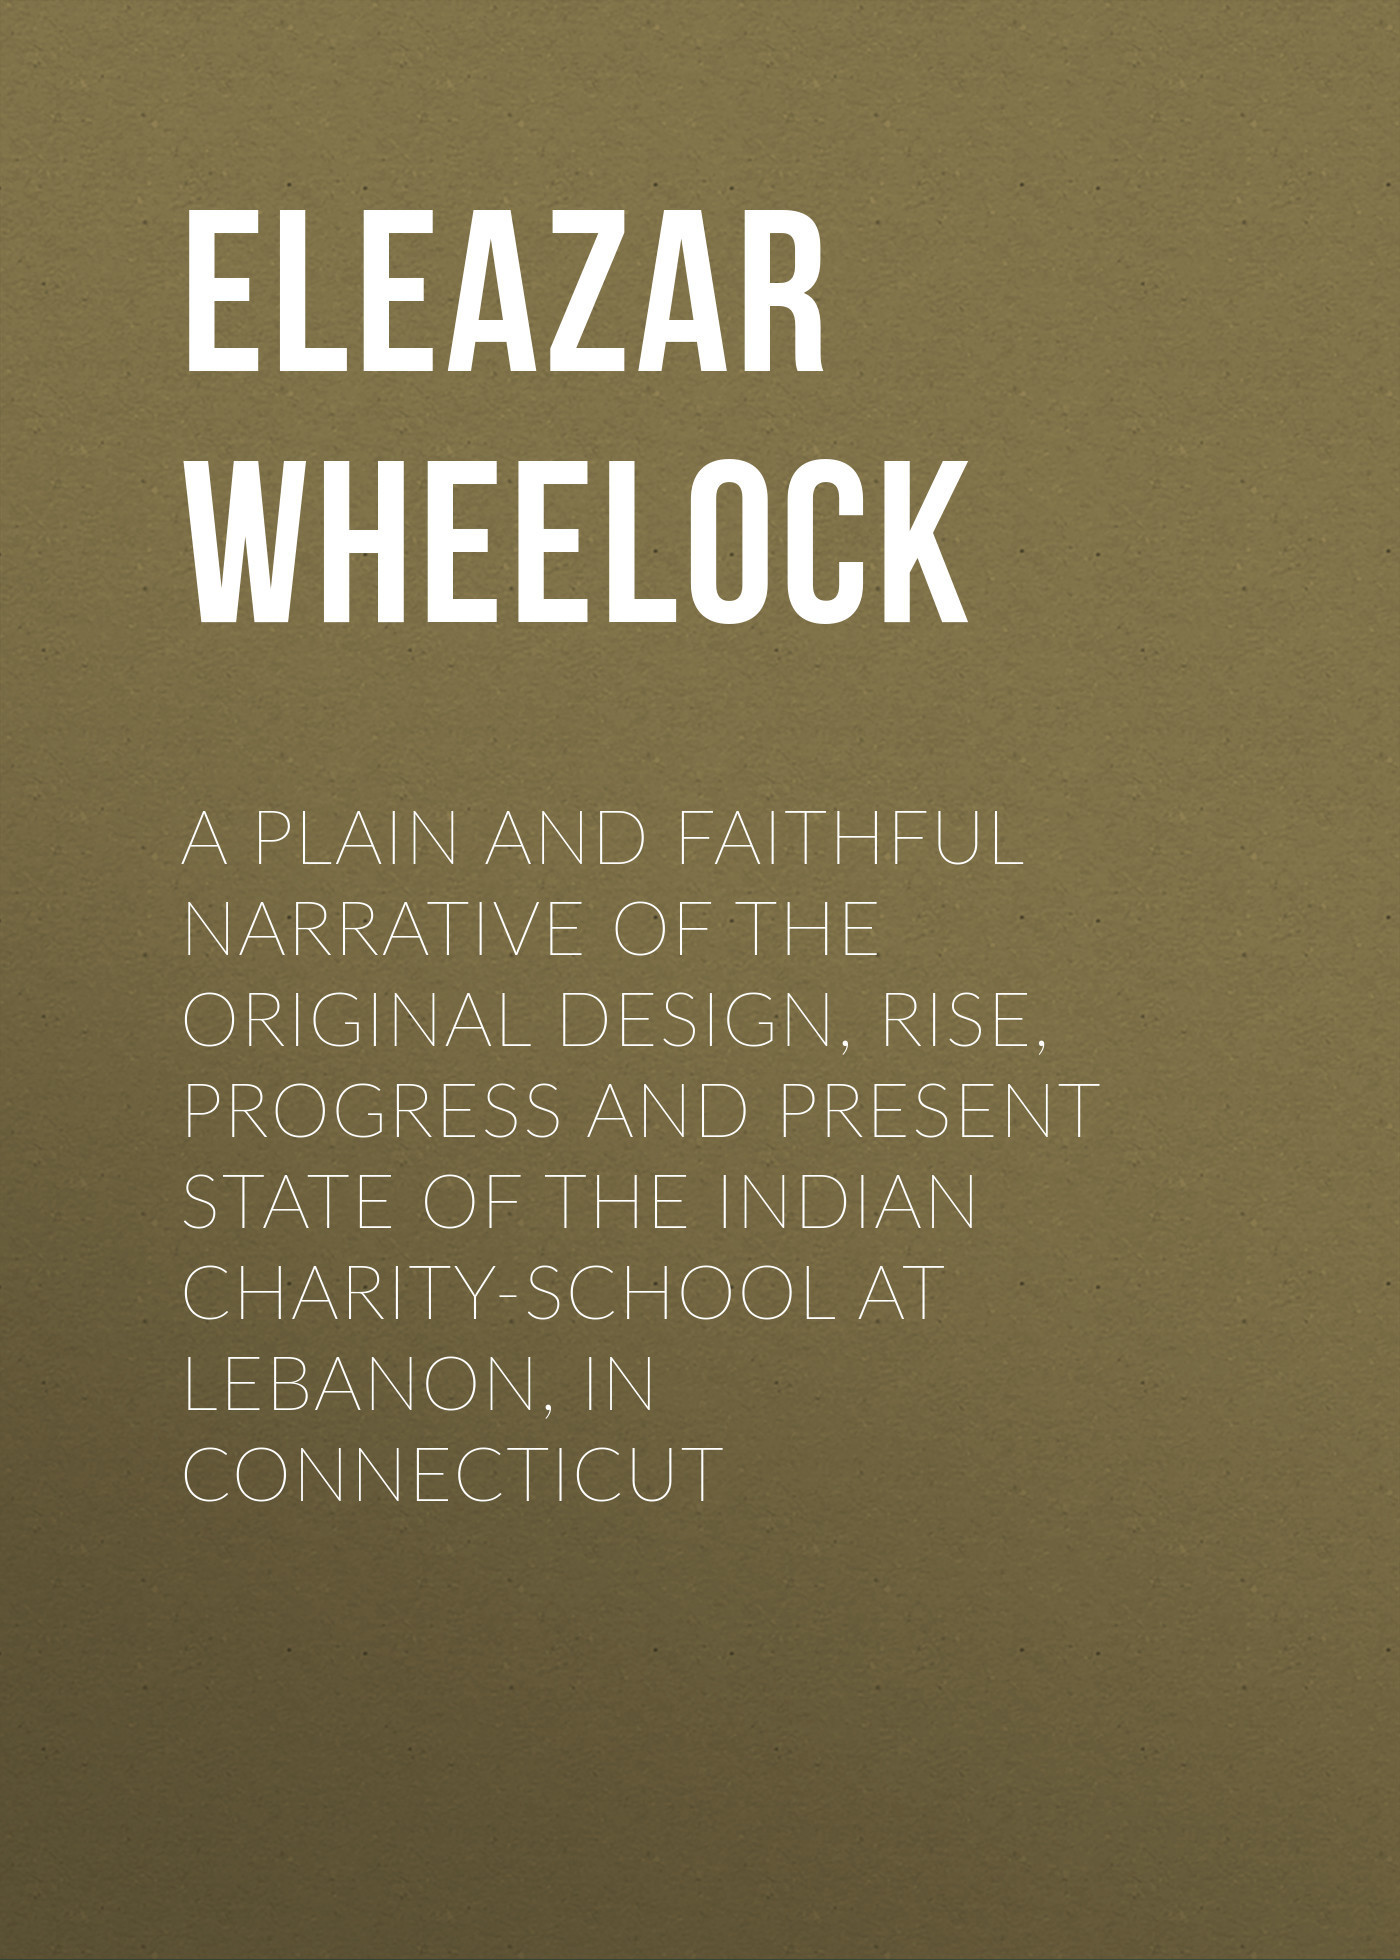 Eleazar Wheelock A plain and faithful narrative of the original design, rise, progress and present state of the Indian charity-school at Lebanon, in Connecticut кружка любимый внук с рисунком